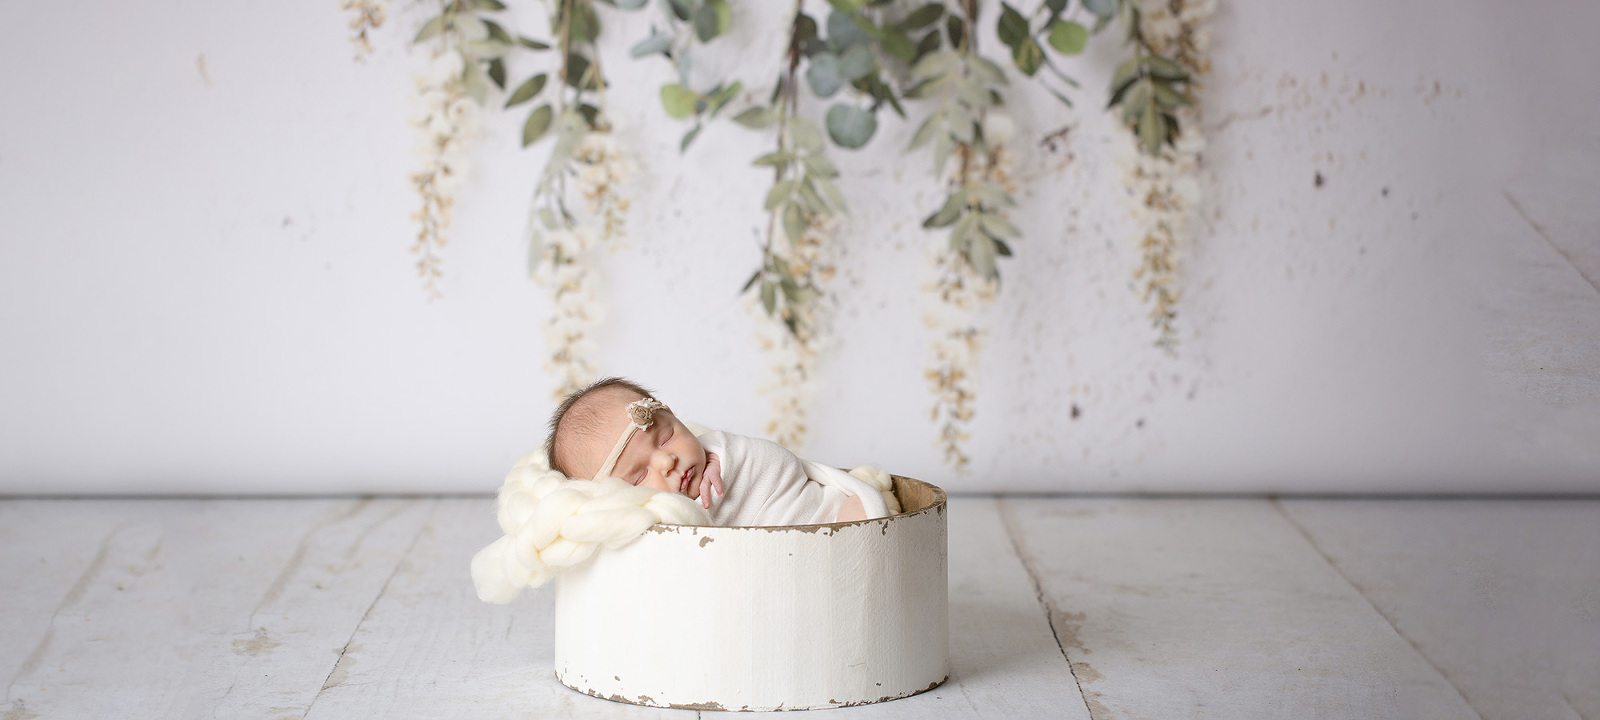 baby laying in bowl in front of leaf backdrop